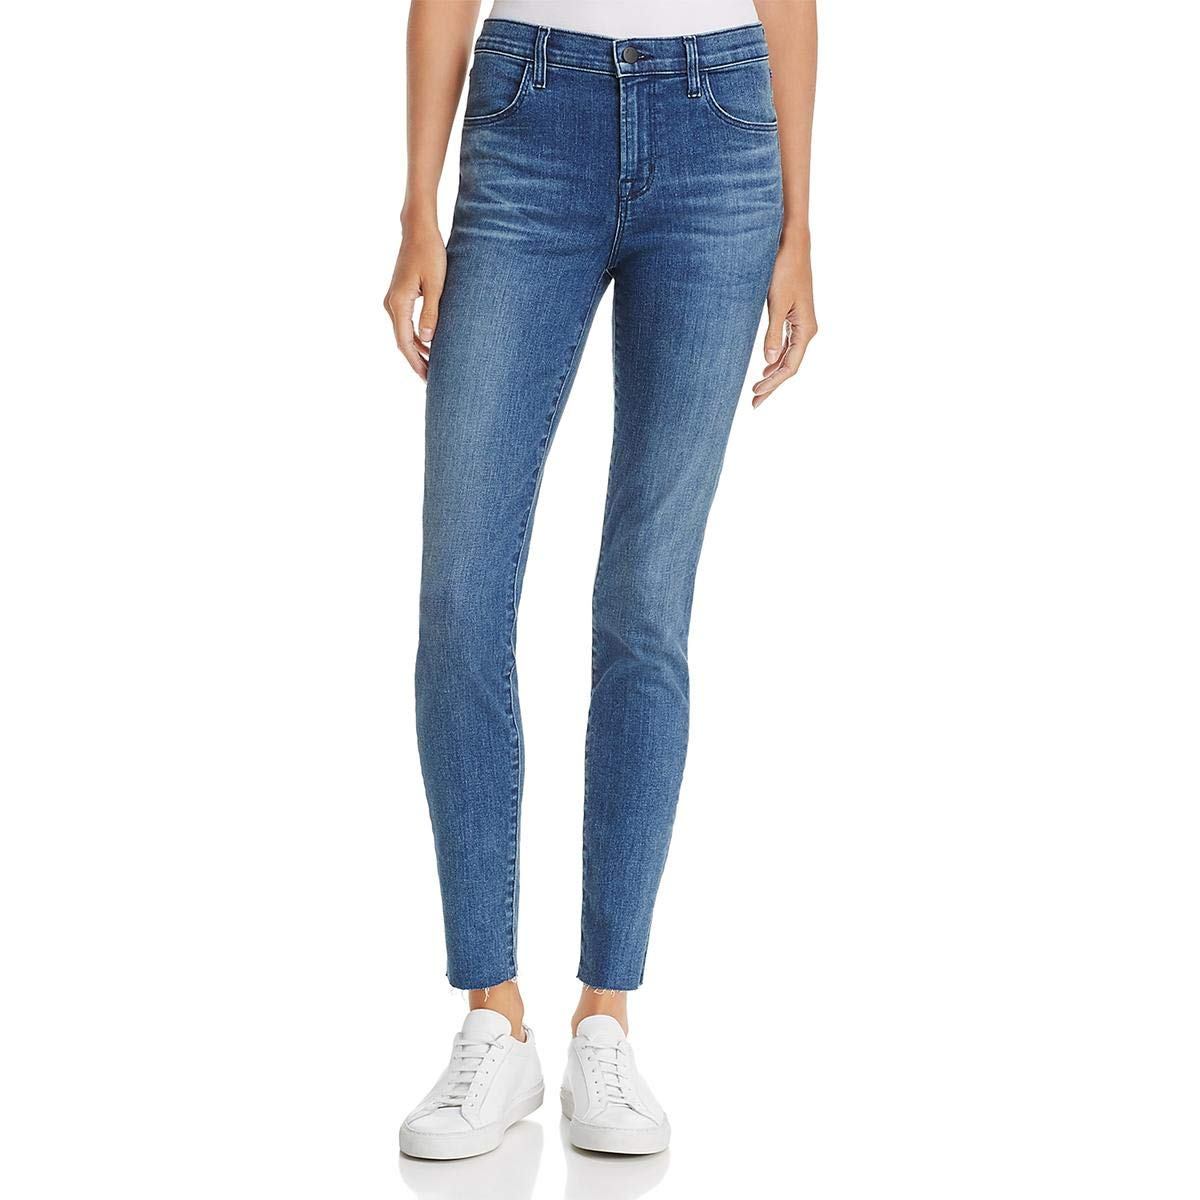 J Brand Womens Maria High Rise Ankle Skinny Jeans Blue 26